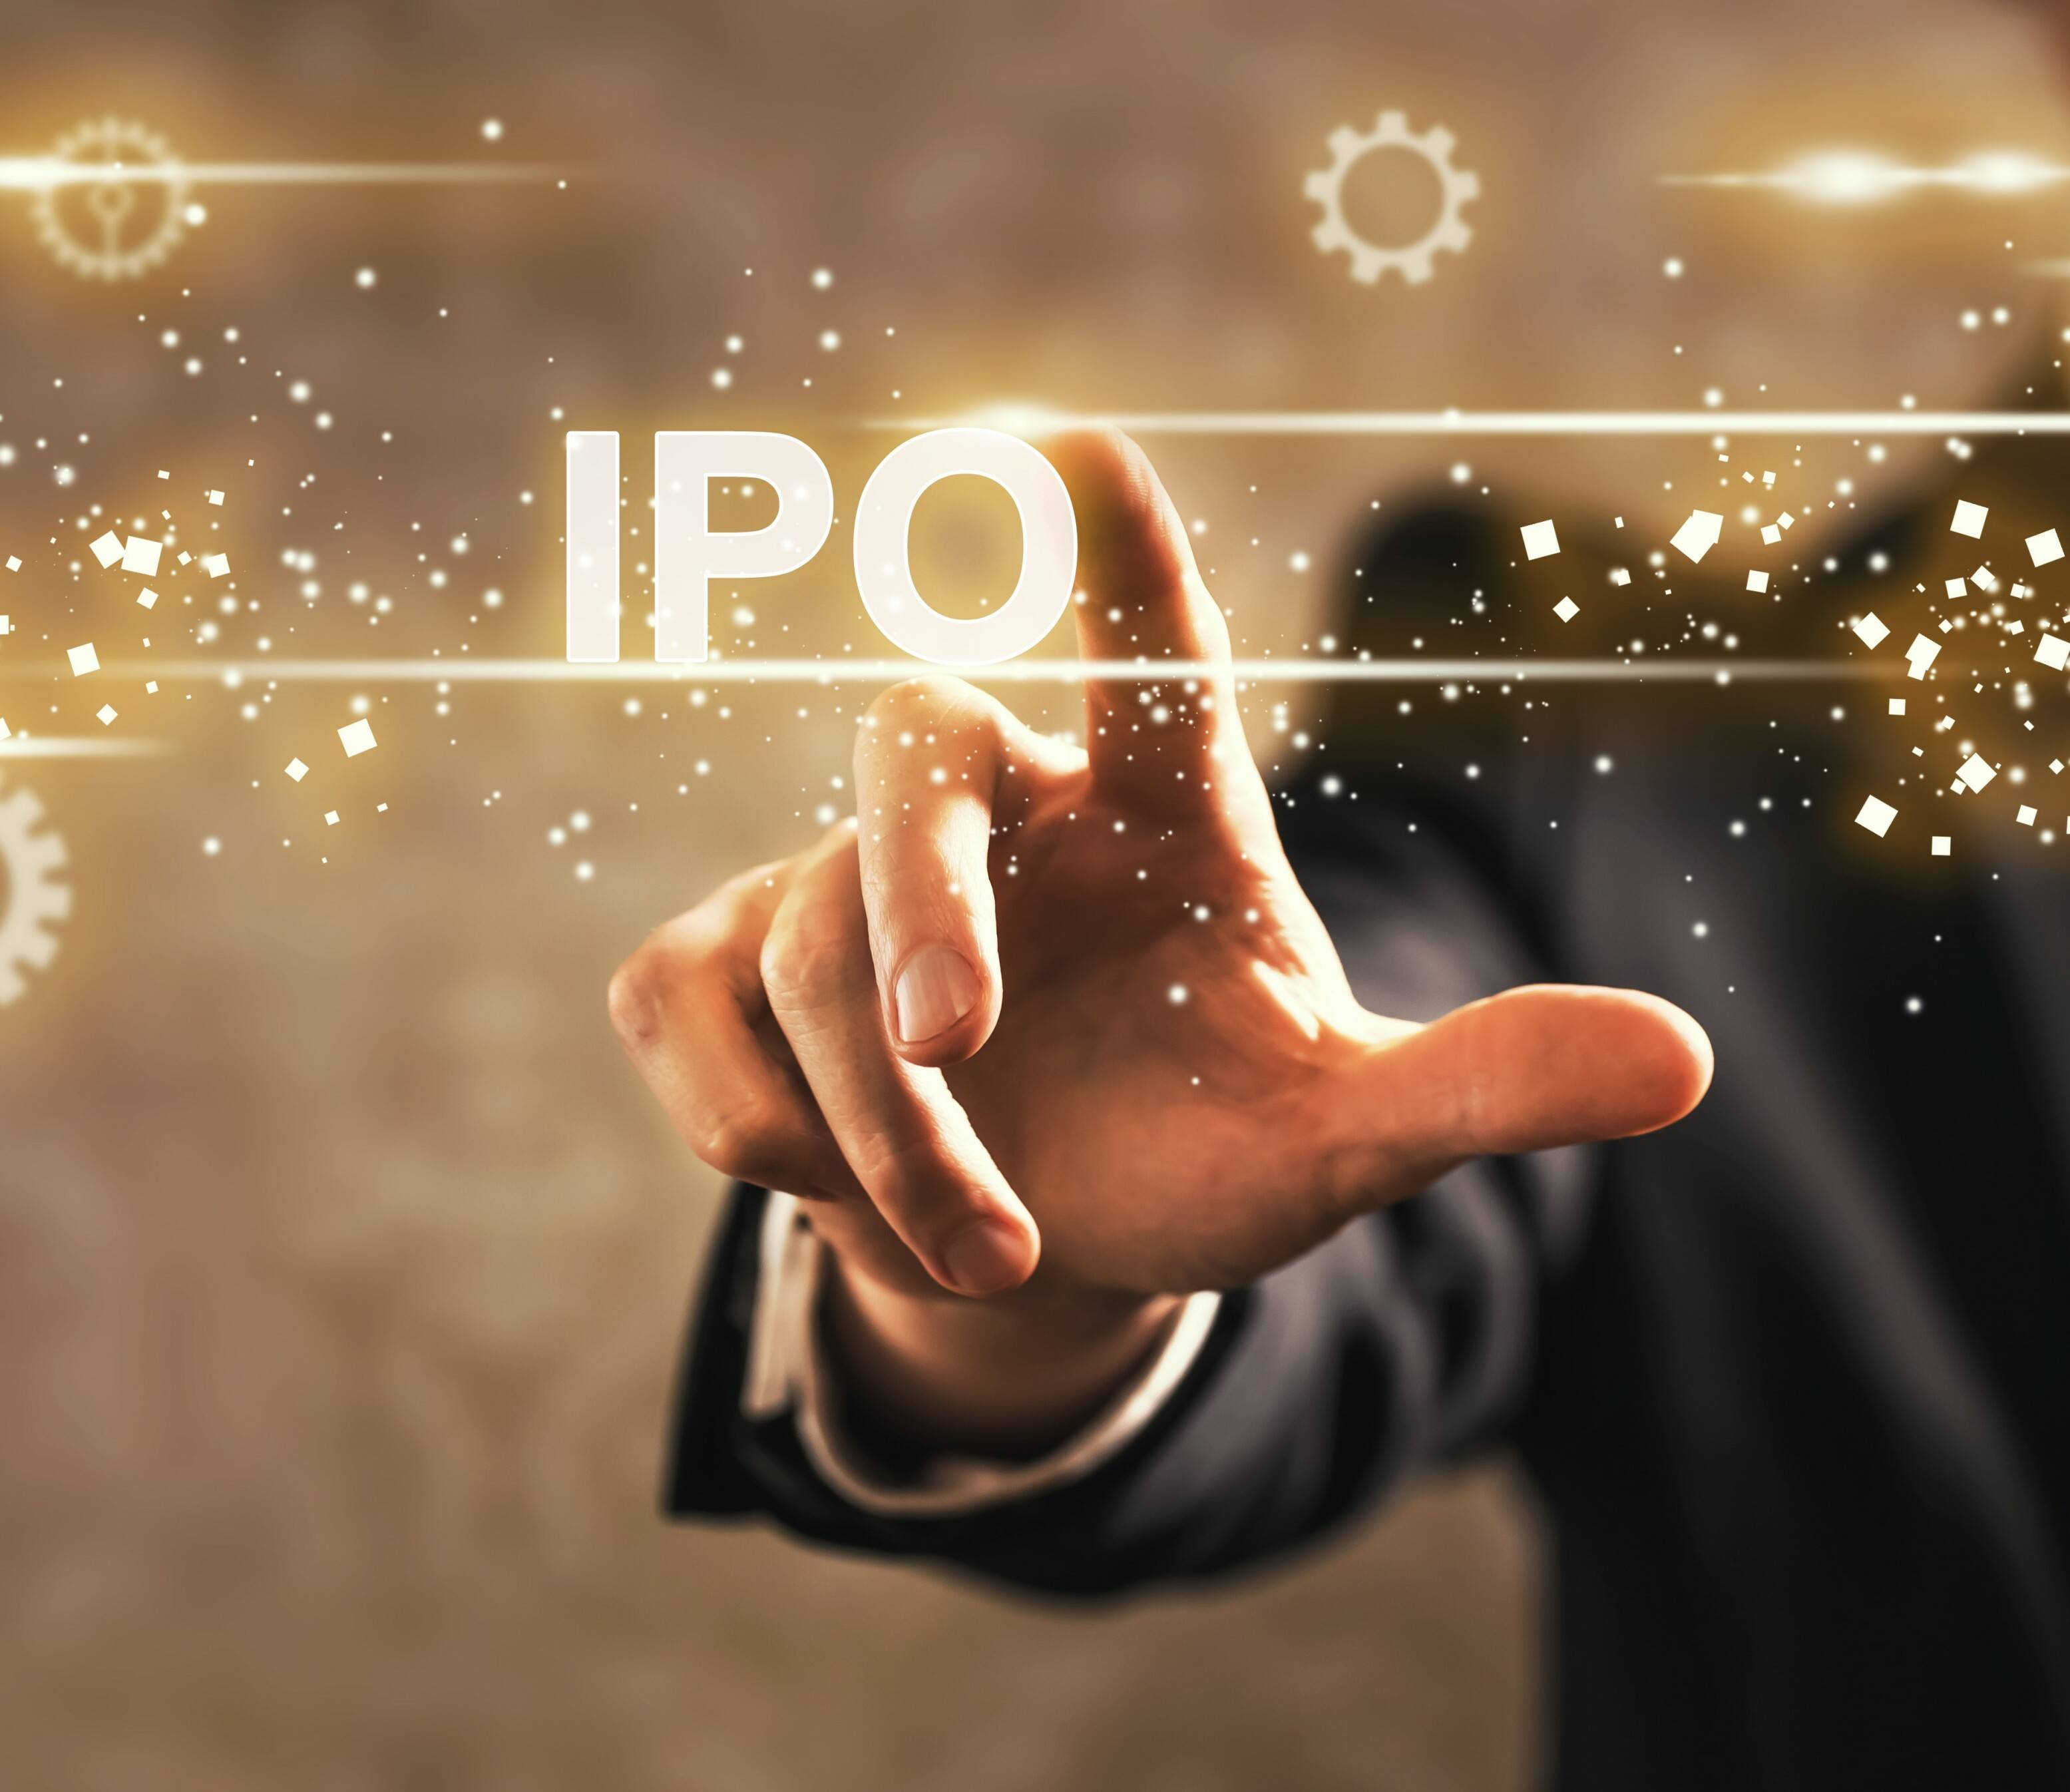 Palantir Technologies 2020 IPO could be massive – does Amazon need to look in its rear view mirror?